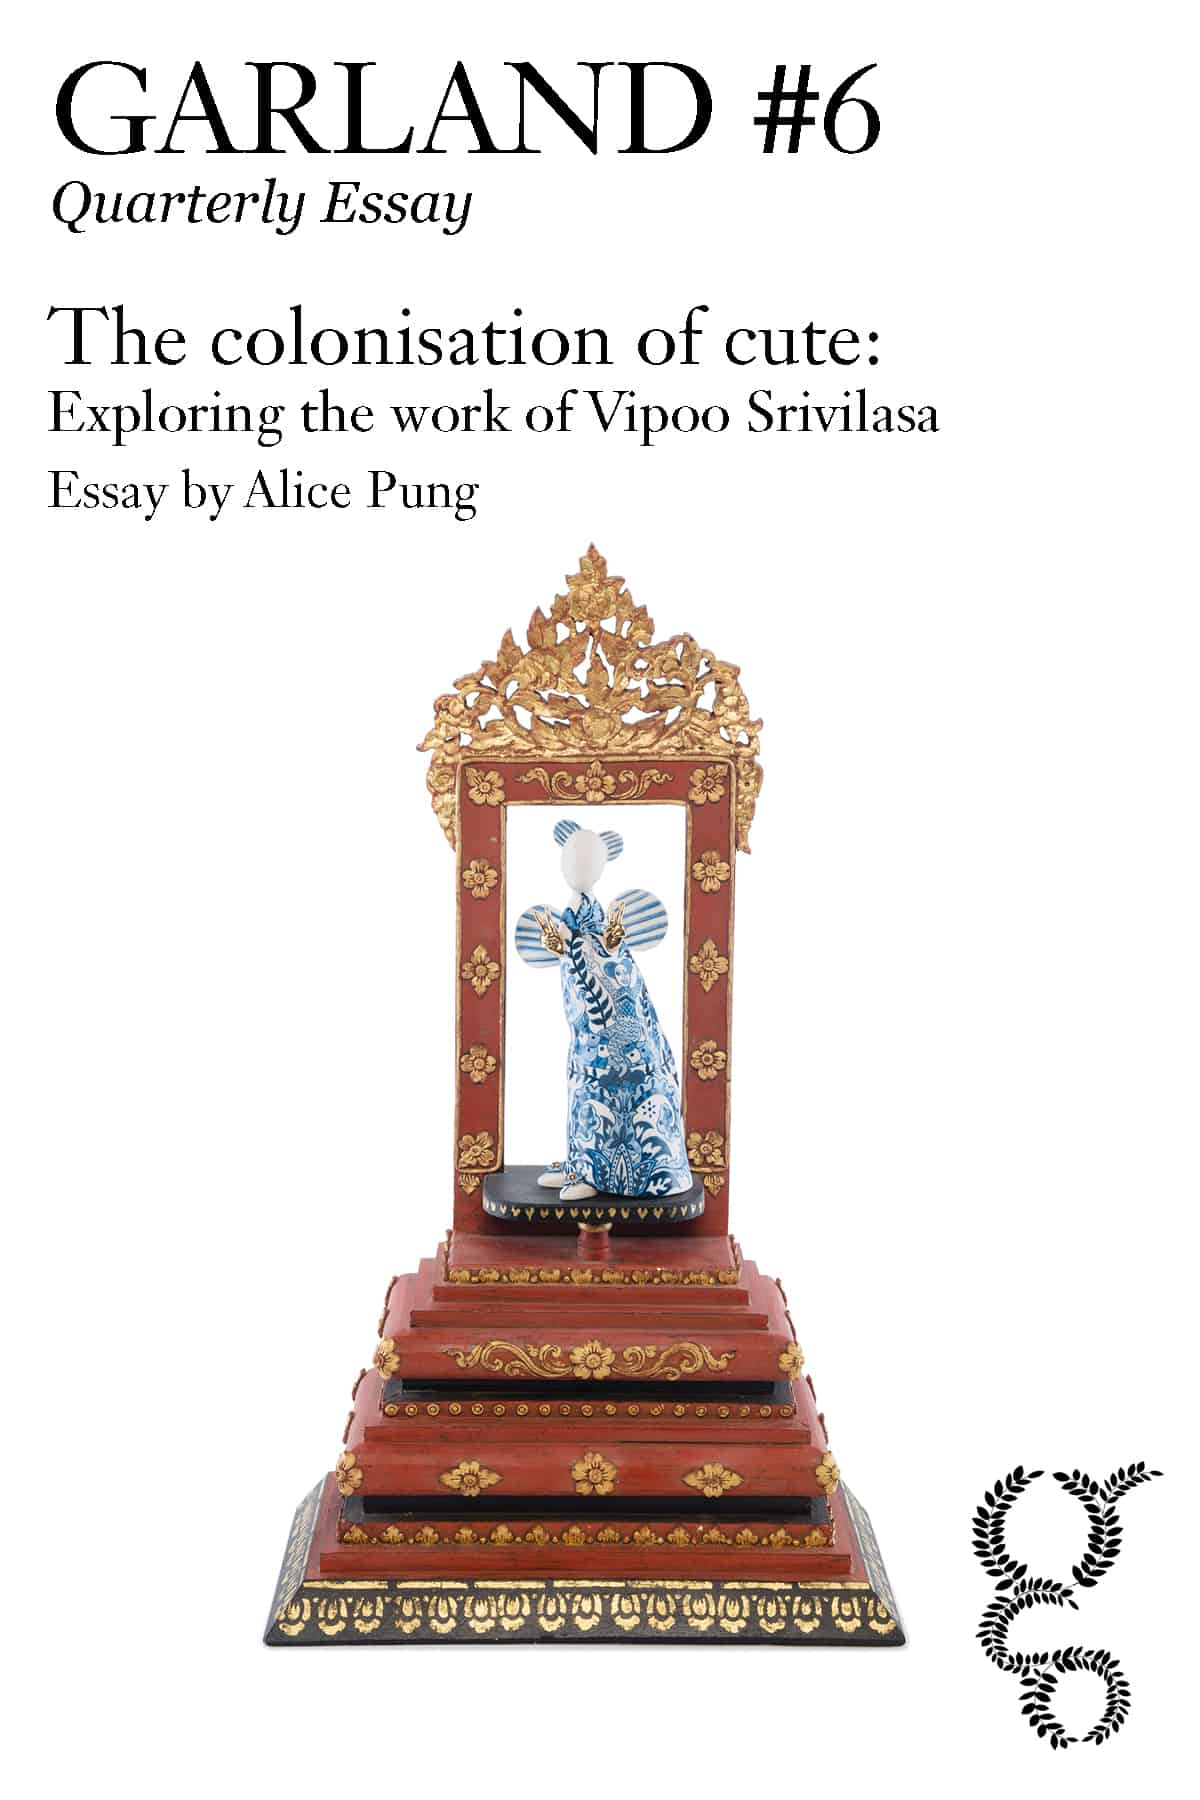 garland quarterly essay the colonisation of cute exploring alice pung has written poignant memoirs of her life growing up in western melbourne as the daughter of a chinese n refugee family